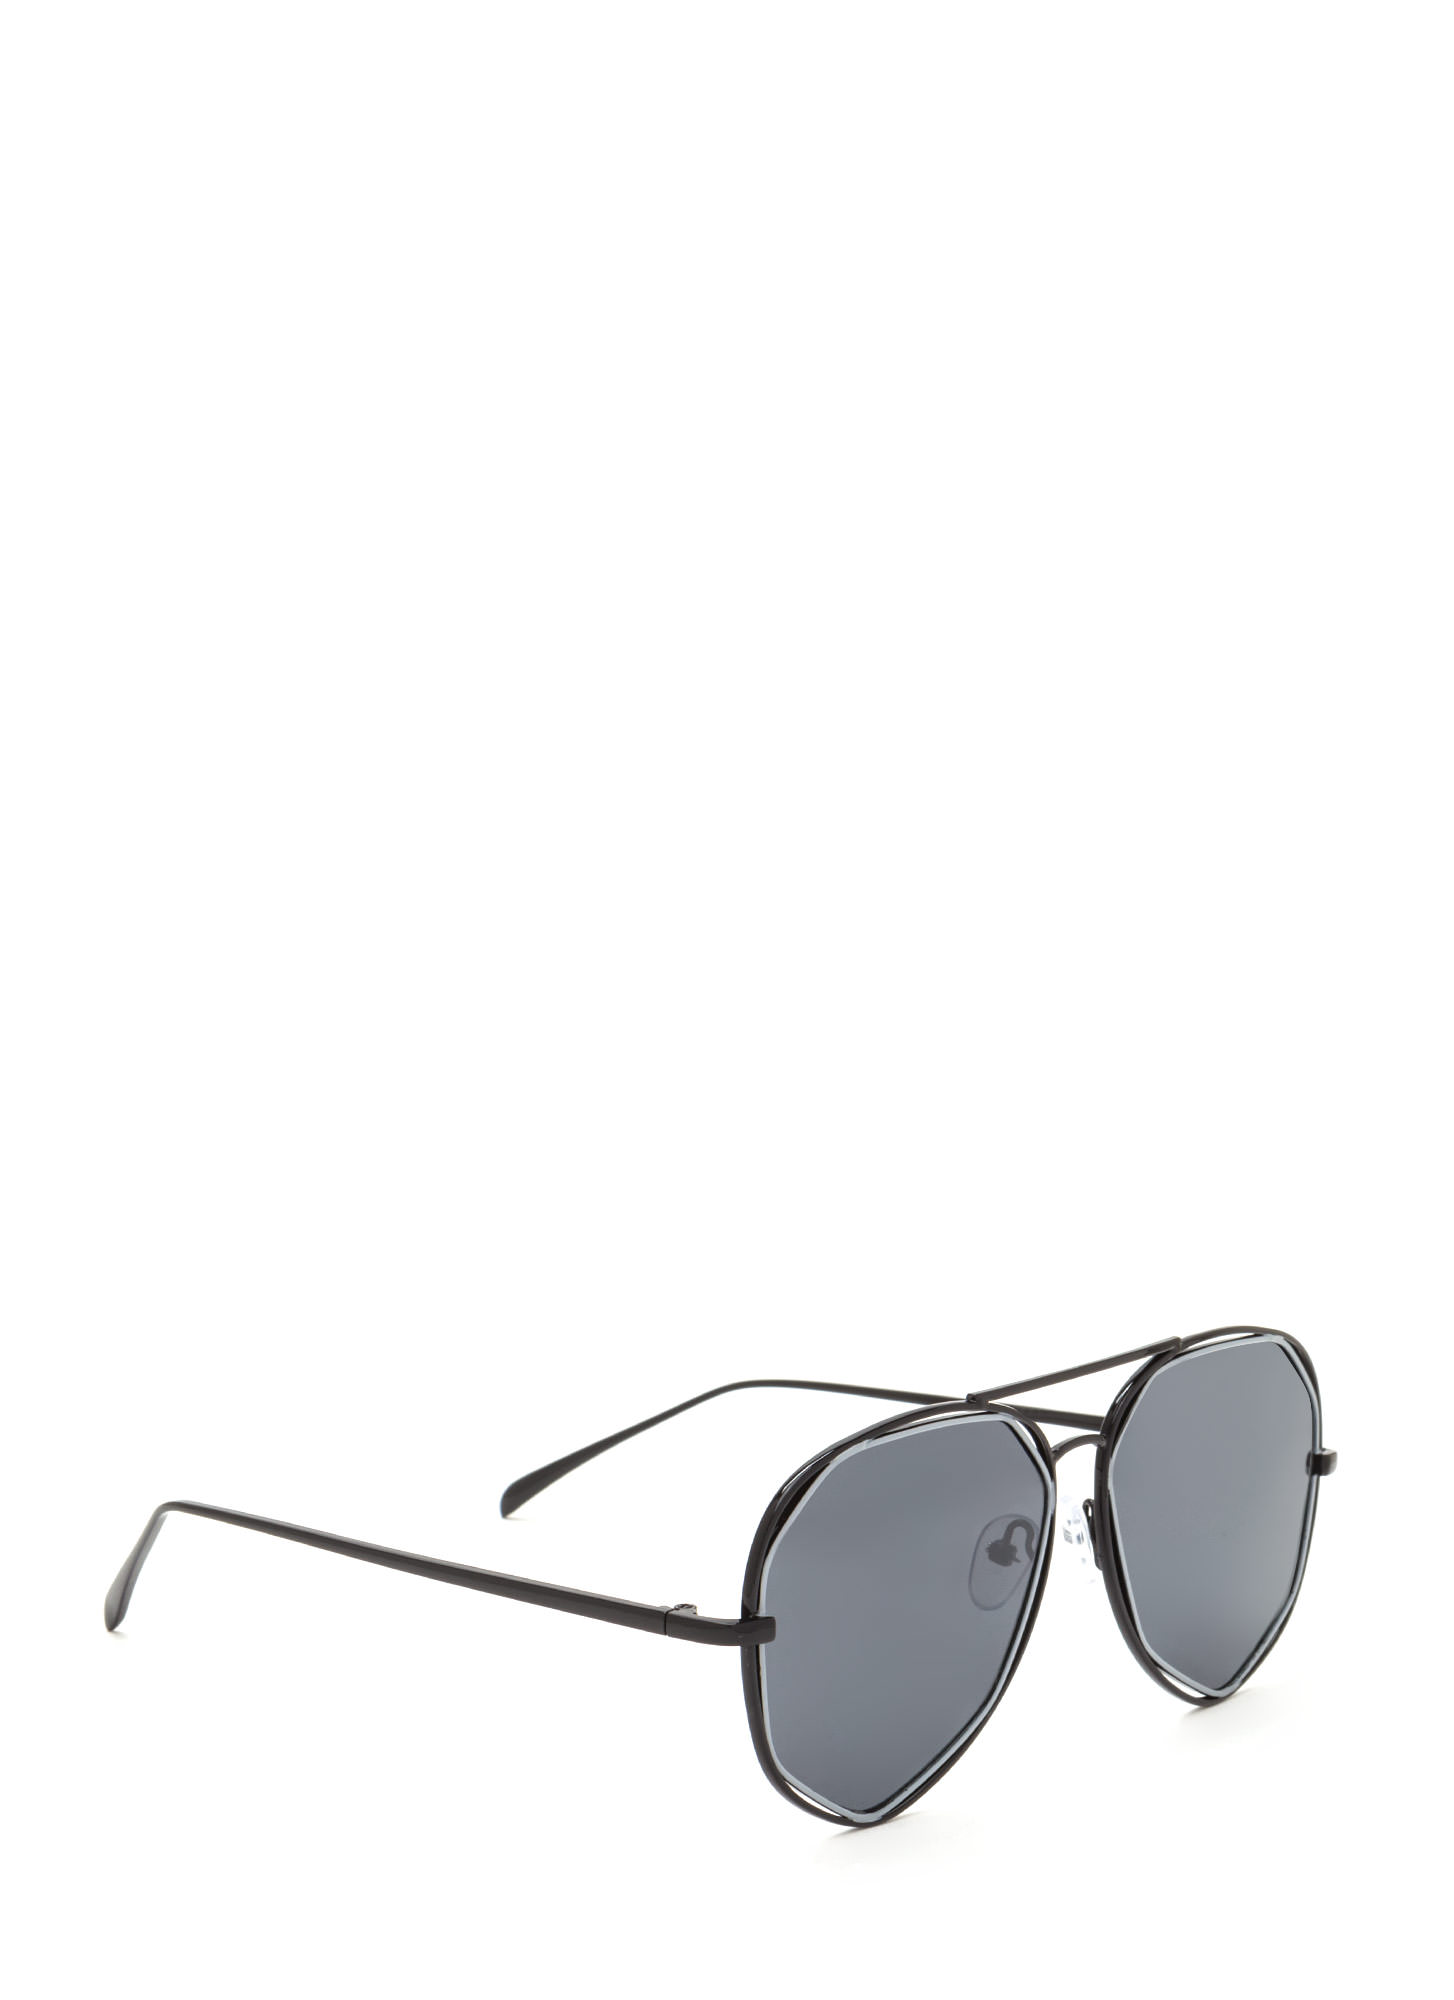 Get In Shapes Flat Aviator Sunglasses CHARCOAL